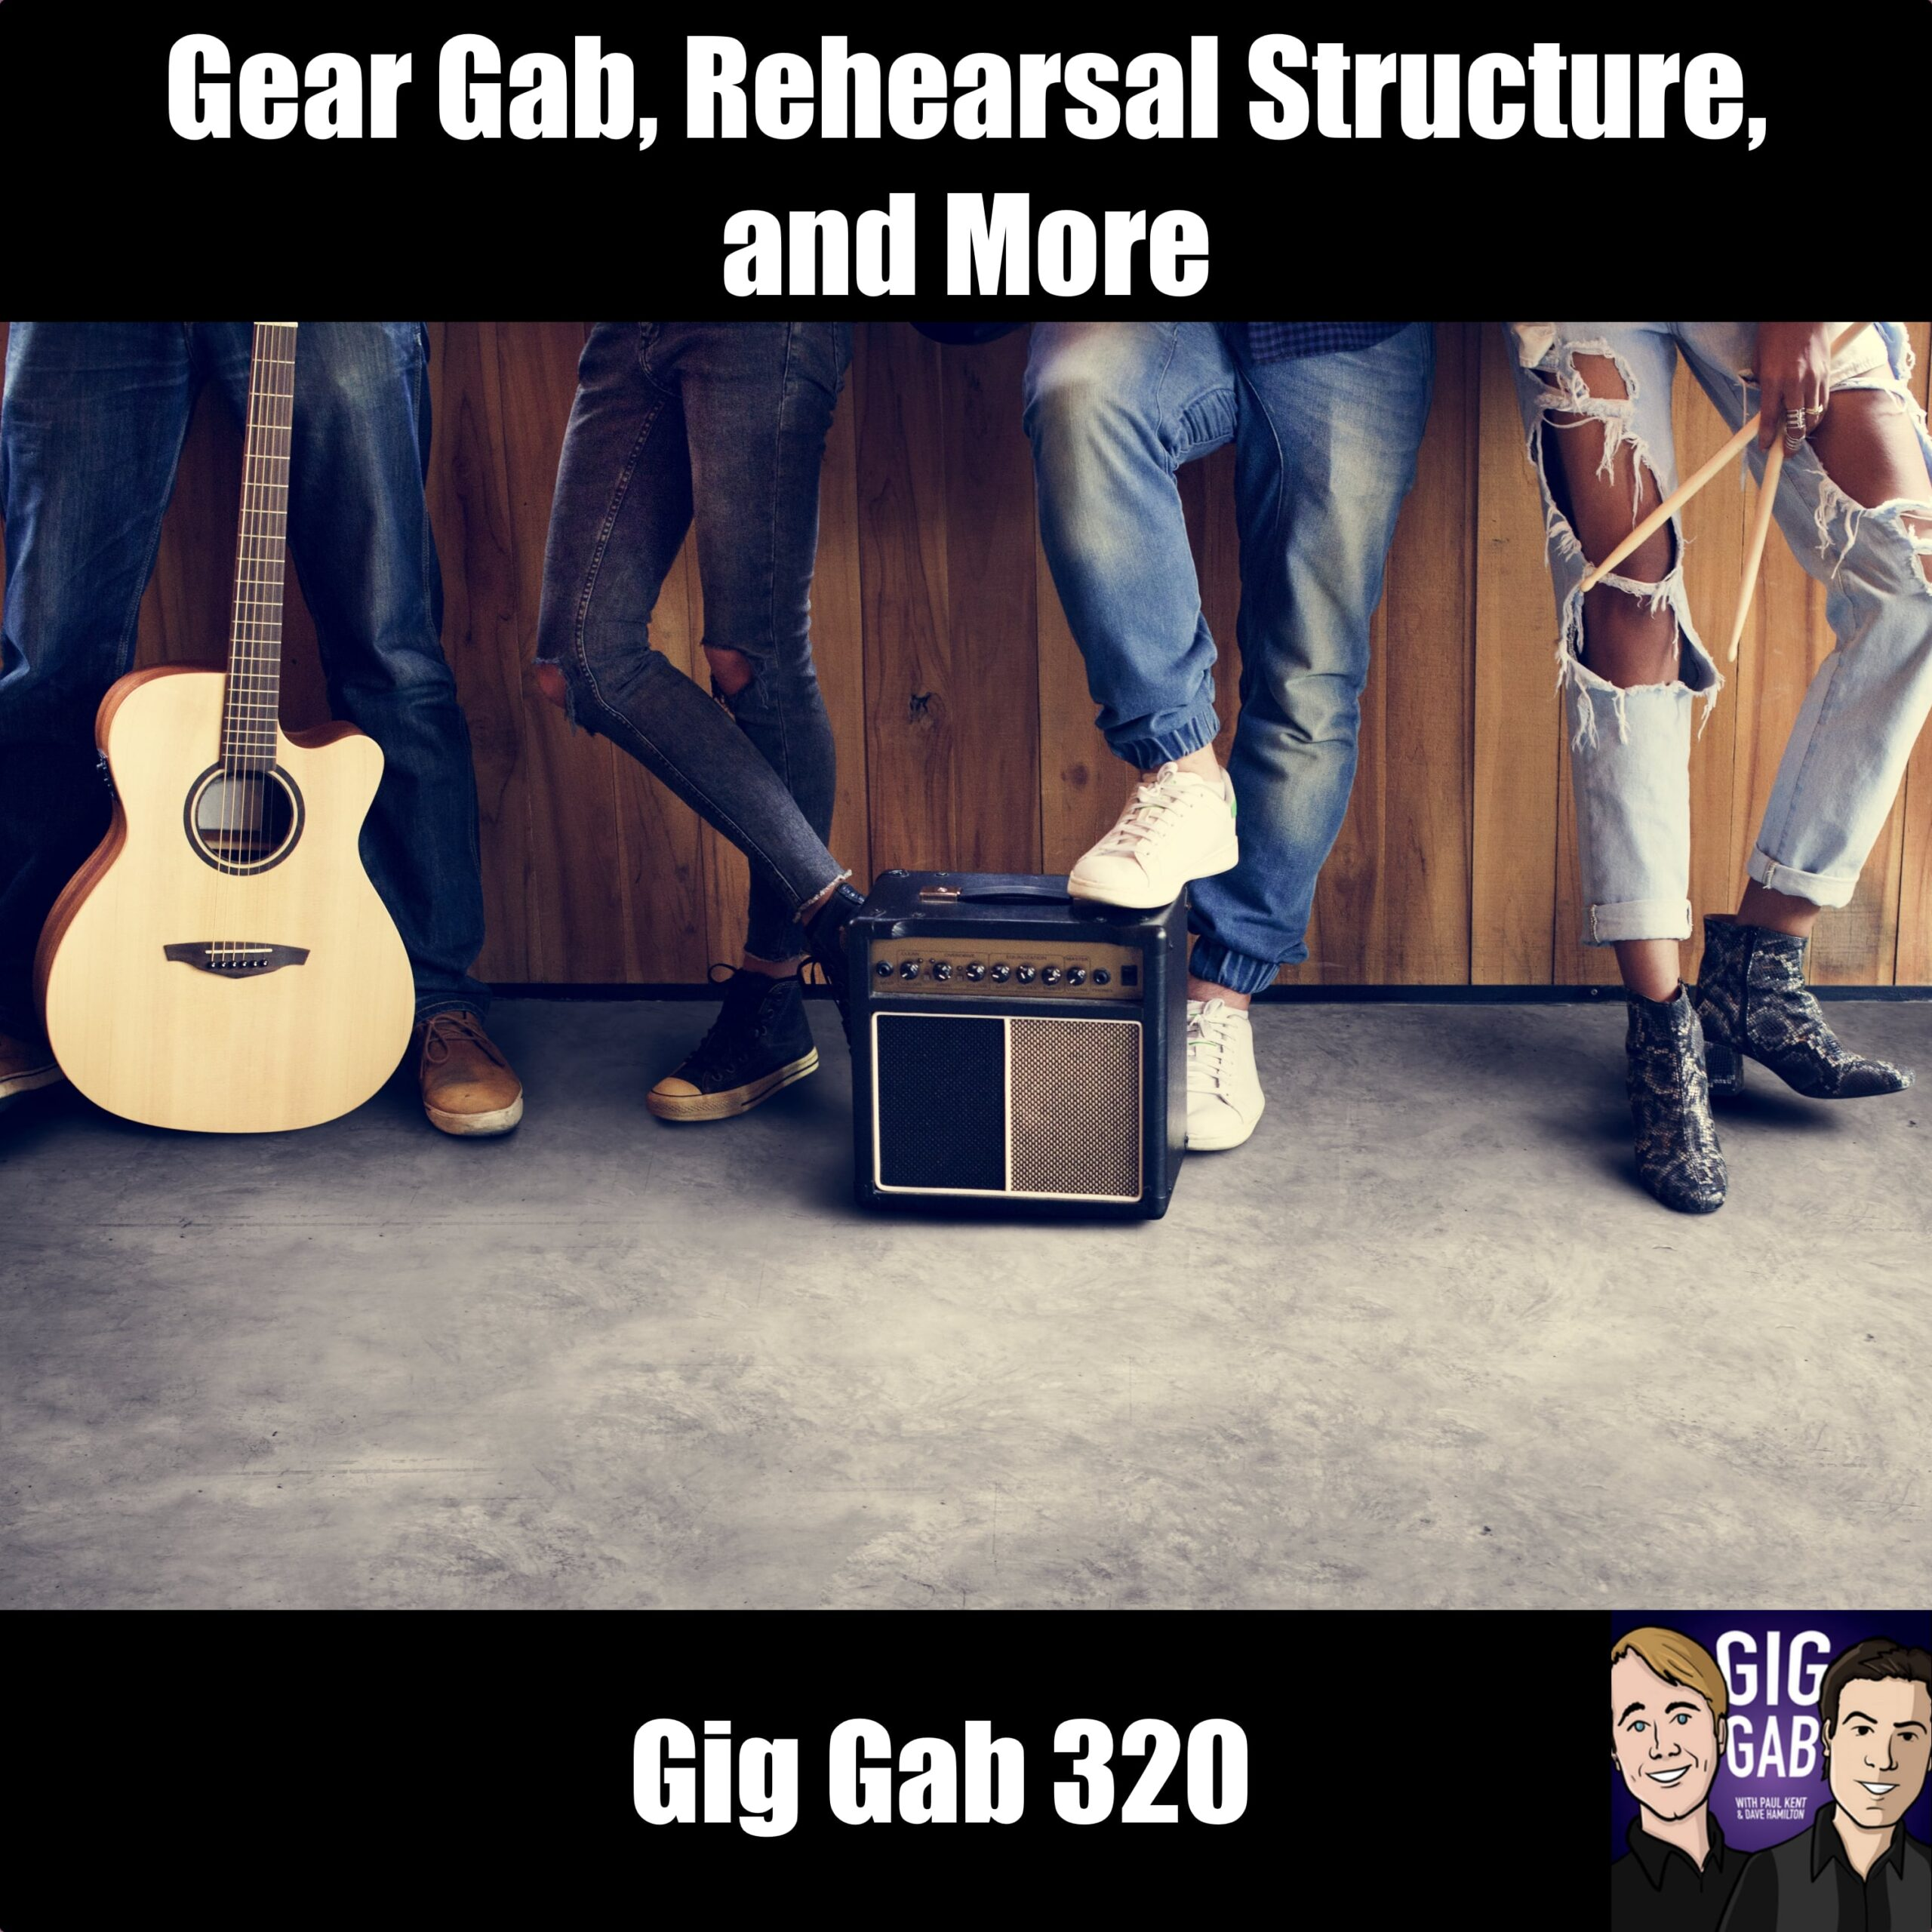 Gear Gab, Rehearsal Structure, and More —Gig Gab 320 episode image